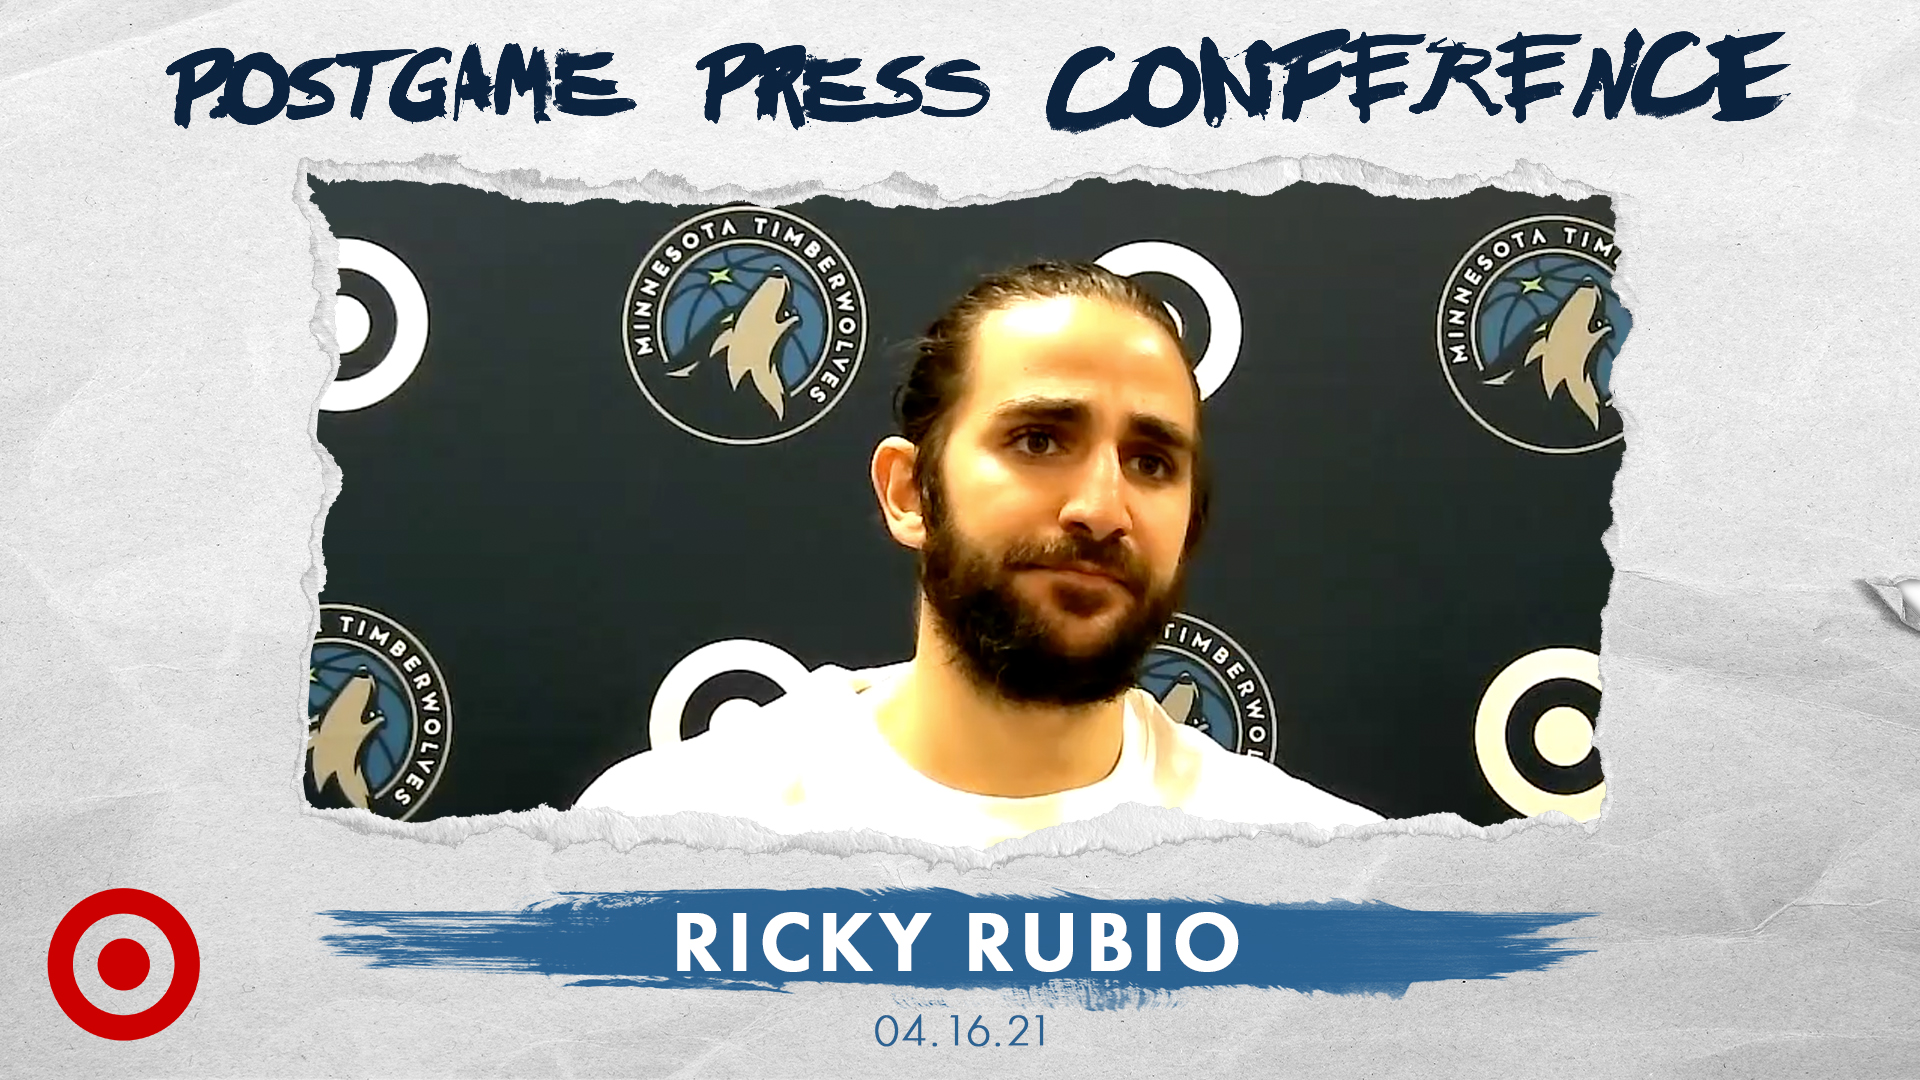 Ricky Rubio Postgame Press Conference - April 16, 2021